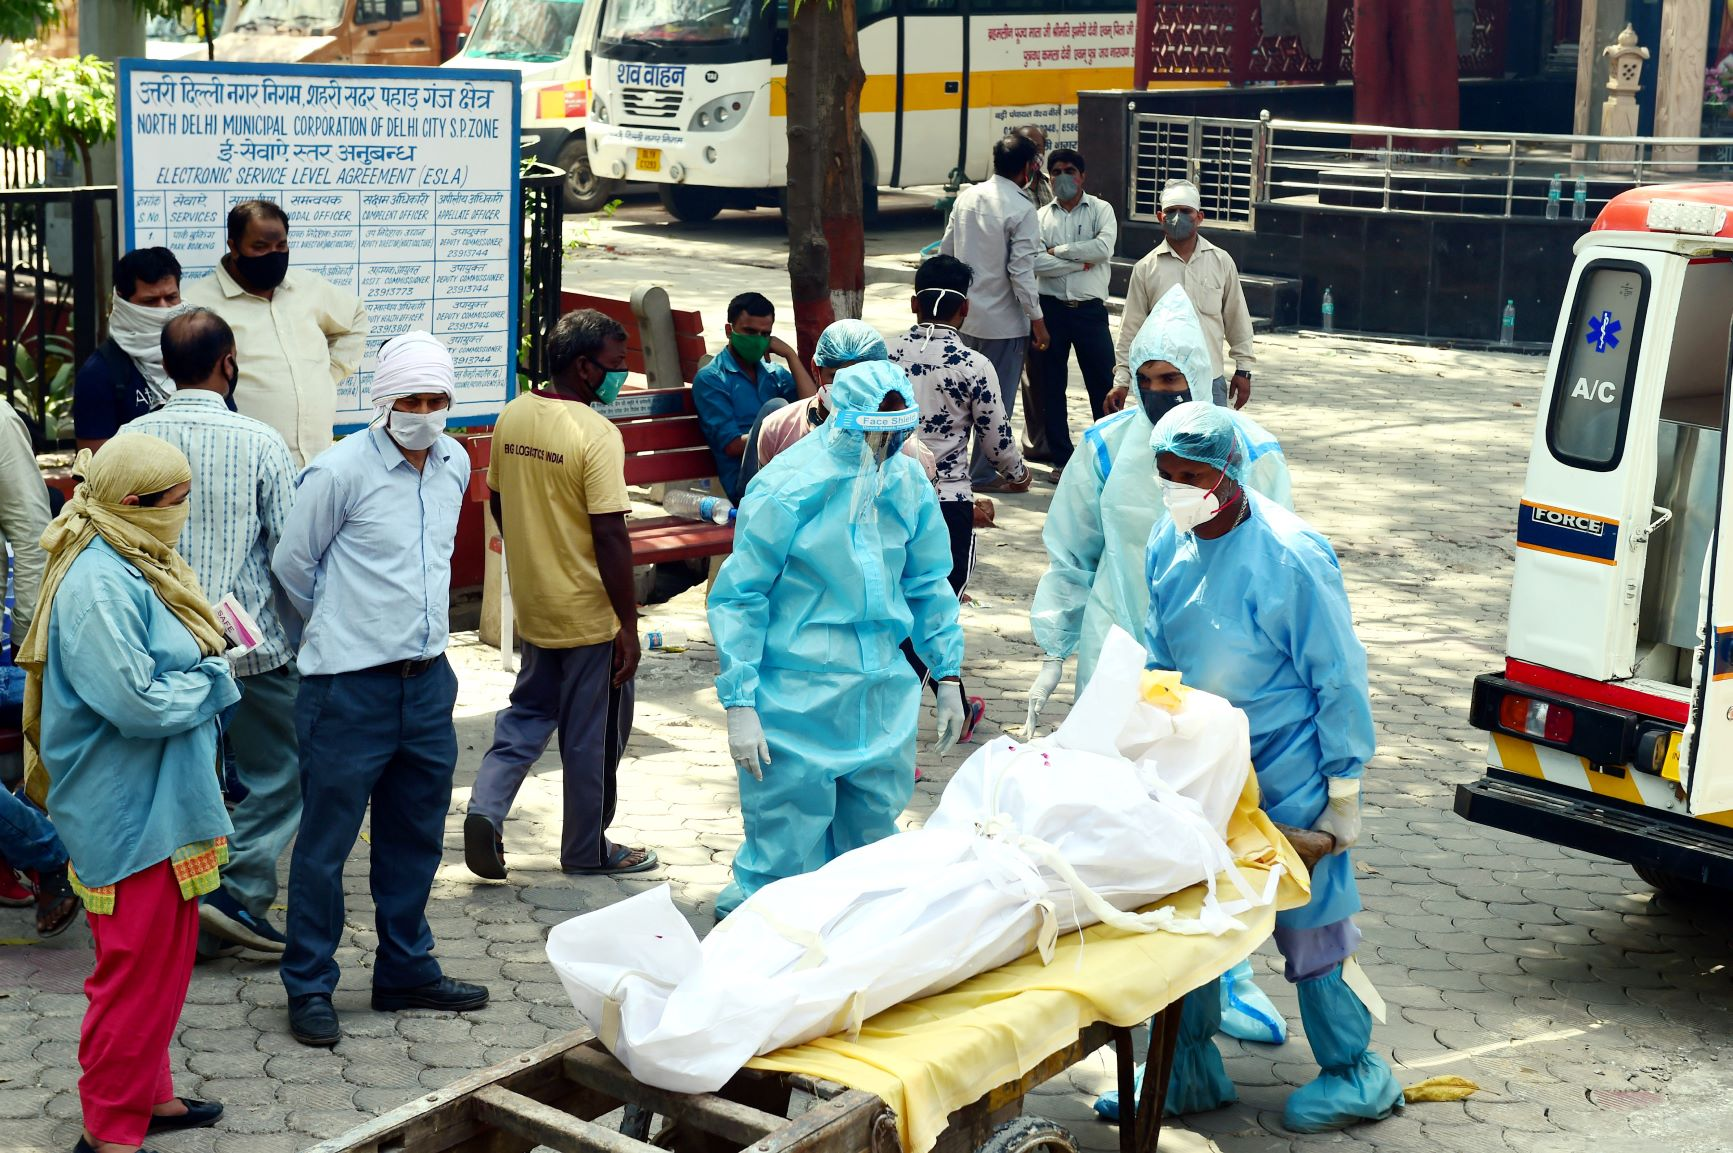 New Delhi: A person who died of COVID-19 being taken for cremation, amid a spike in coronavirus cases countrywide, at Nigam Bodh Crematorium in New Delhi, Wednesday, April 14, 2021. (PTI Photo/Kamal Kishore)(PTI04 14 2021 000087B)